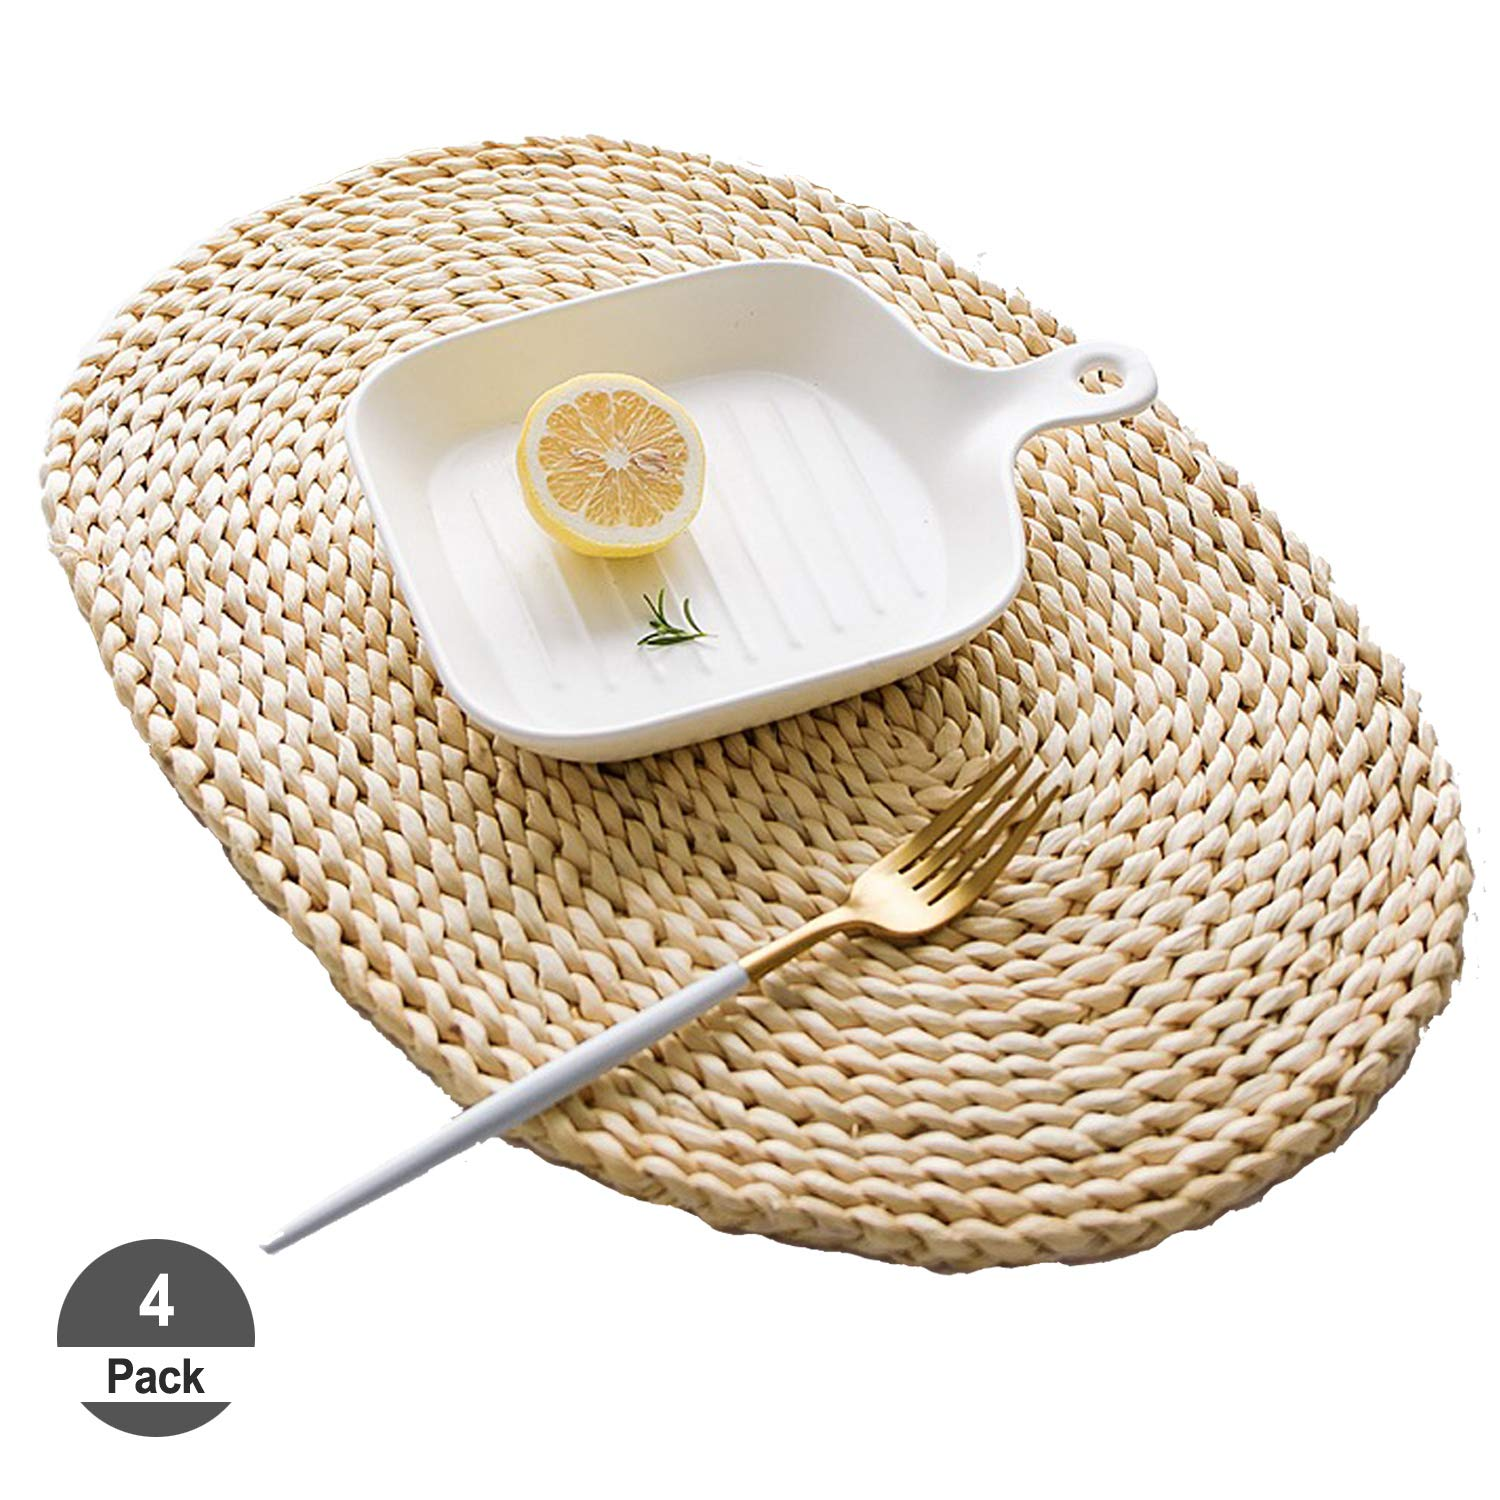 HomeDo 4Pcs Corn Straw Woven Placemats, Round/Oval Rattan Dining Table Mats, Natural Grass Weave Placemats Handmade, Coaster mat (4, Ellipse11.8''x17.7''(30x45cm))